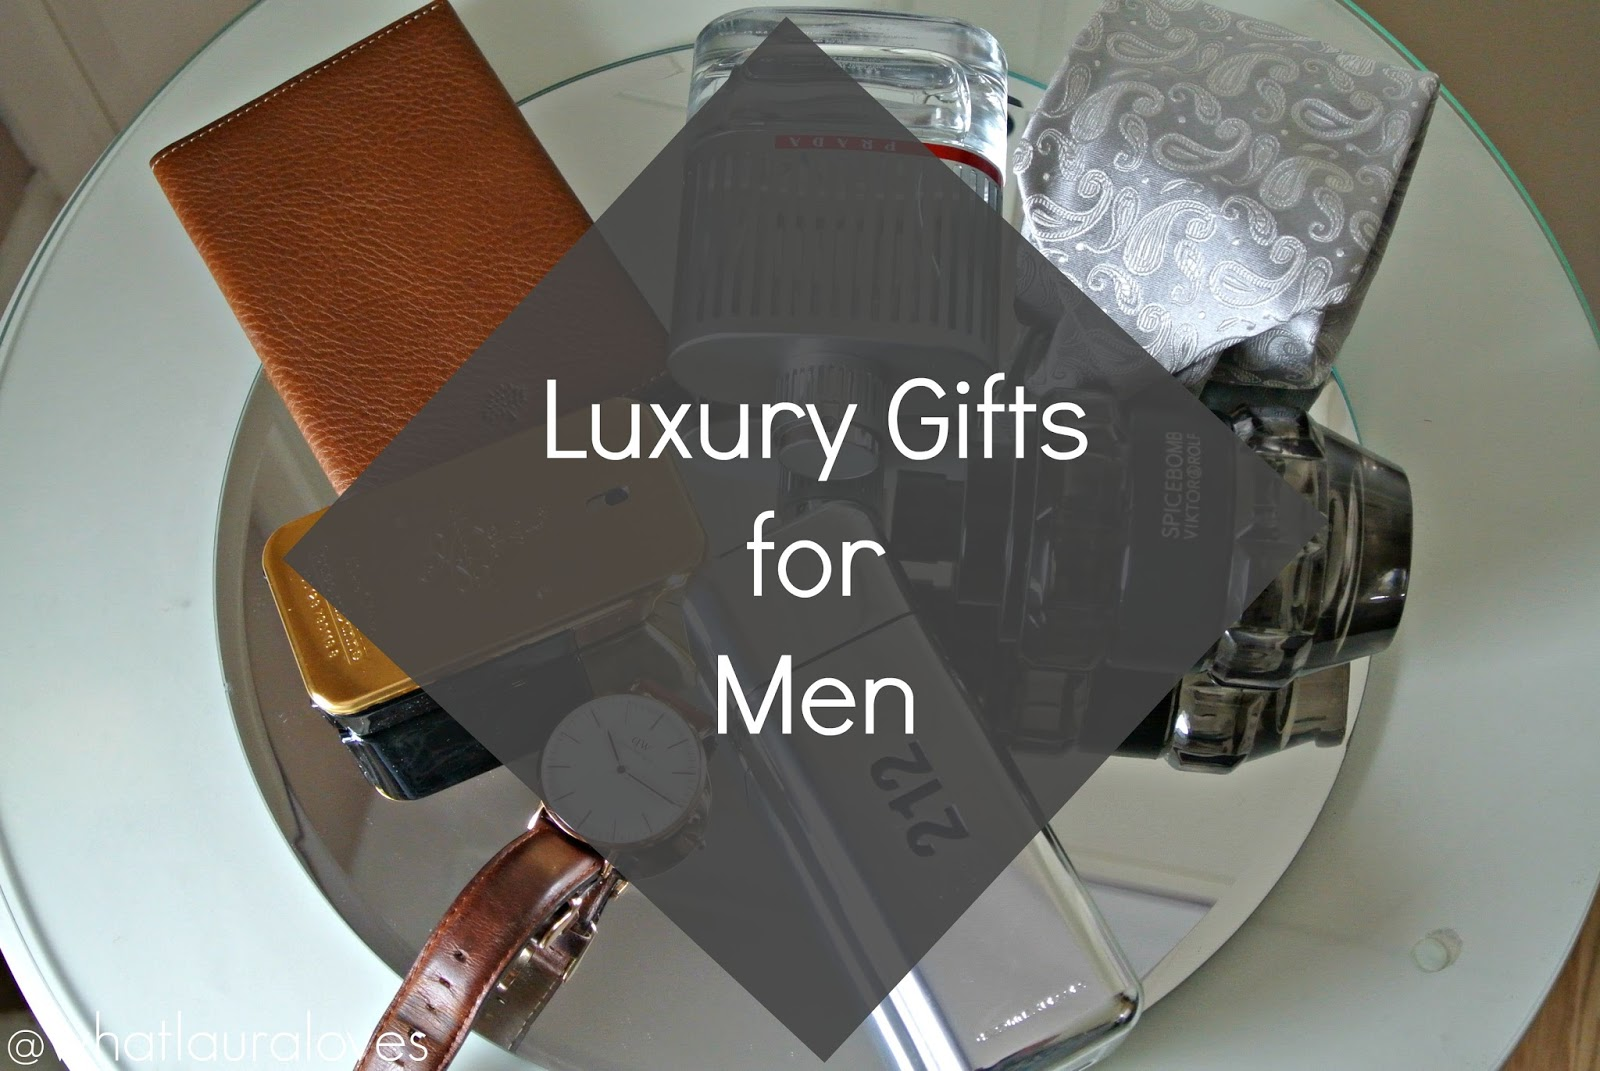 Top 5 Luxury Gift Ideas For Men